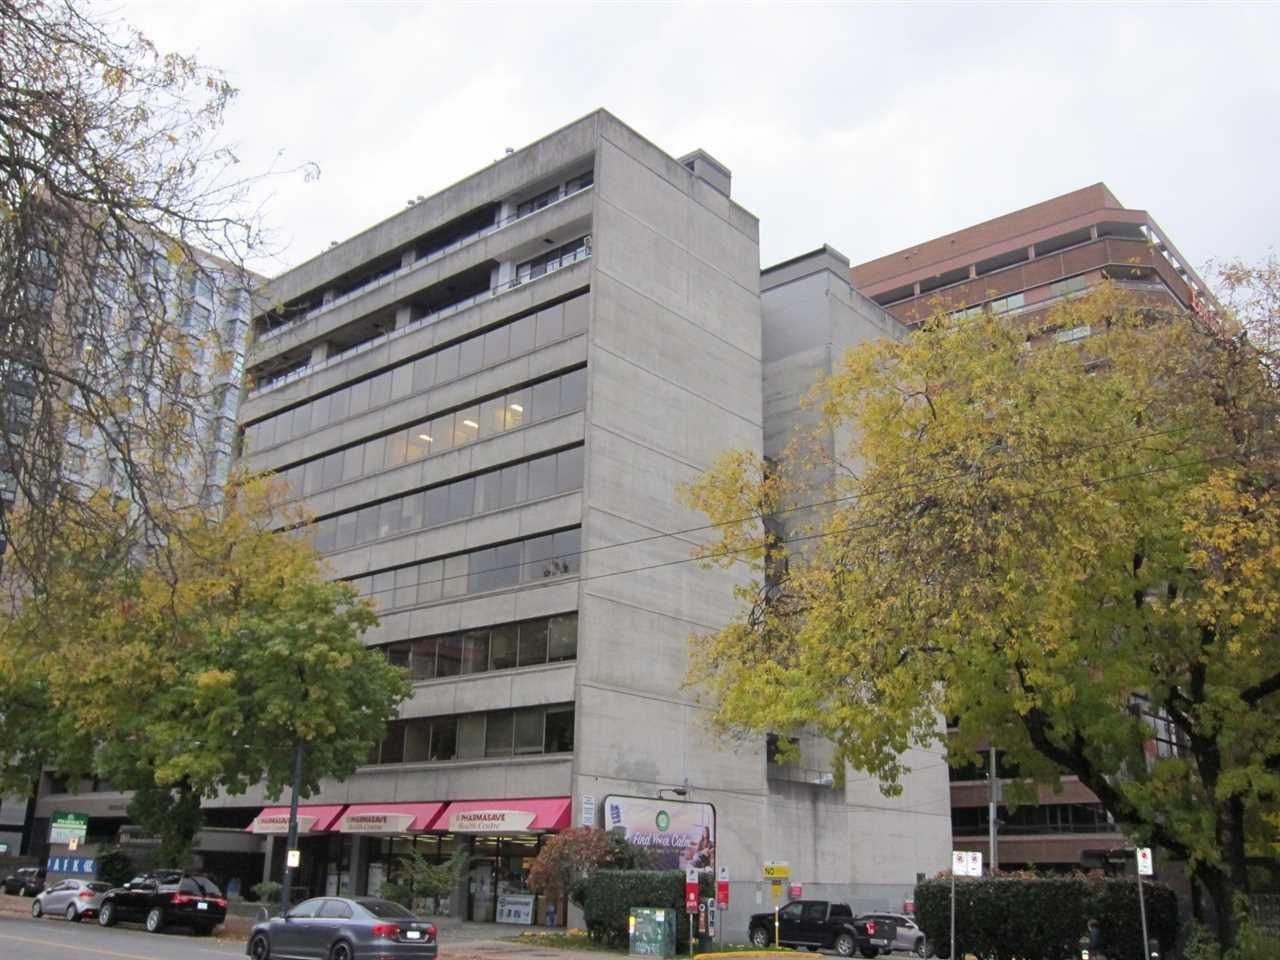 Main Photo: 802 1160 BURRARD STREET in Vancouver: Downtown VW Condo for sale (Vancouver West)  : MLS®# R2318679